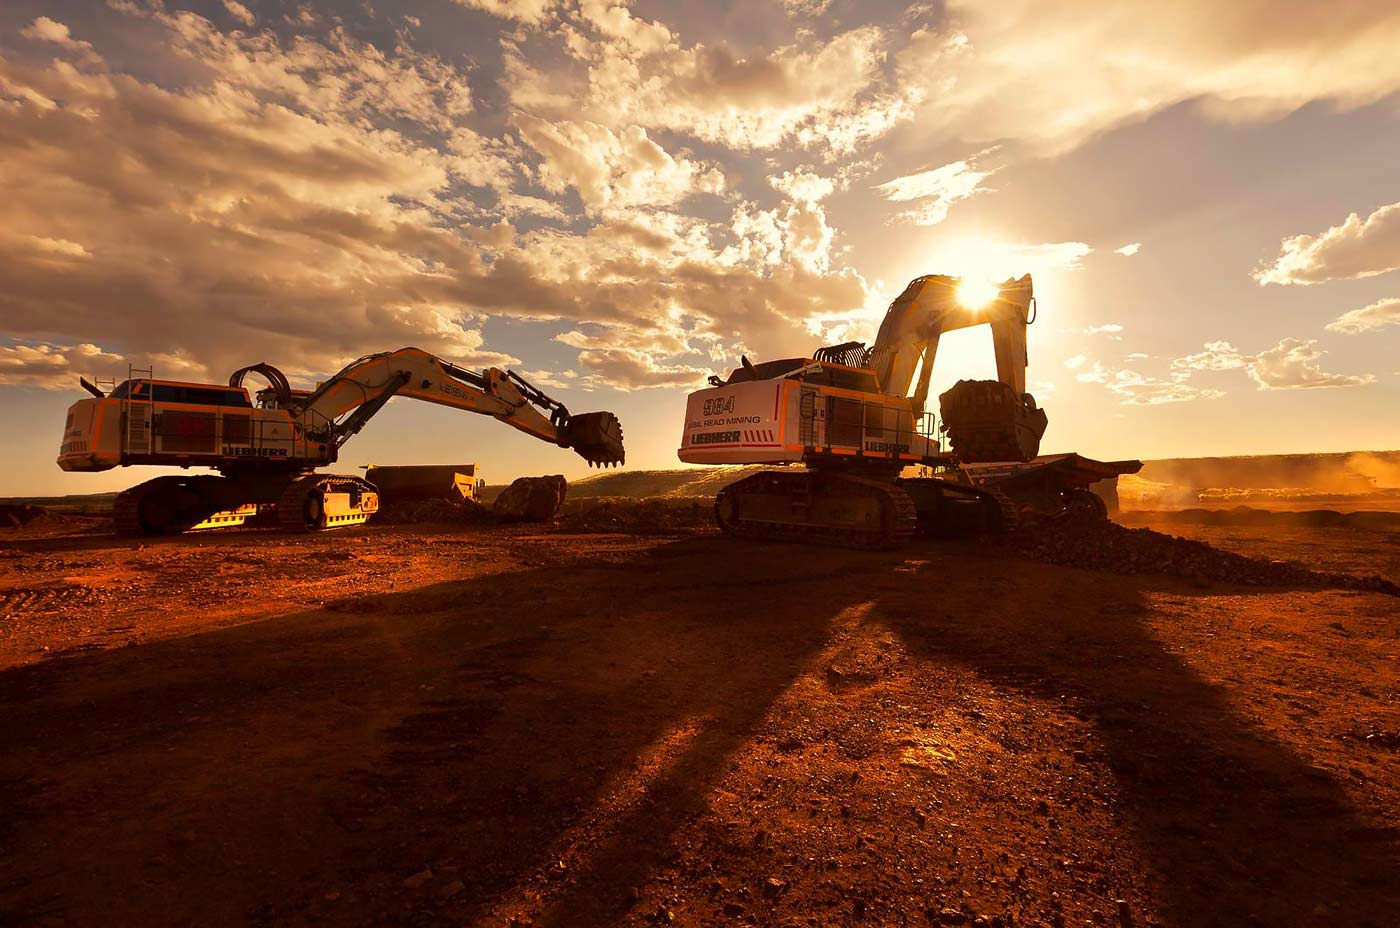 Excavators at work at open pit iron ore mine - mining machinery photography